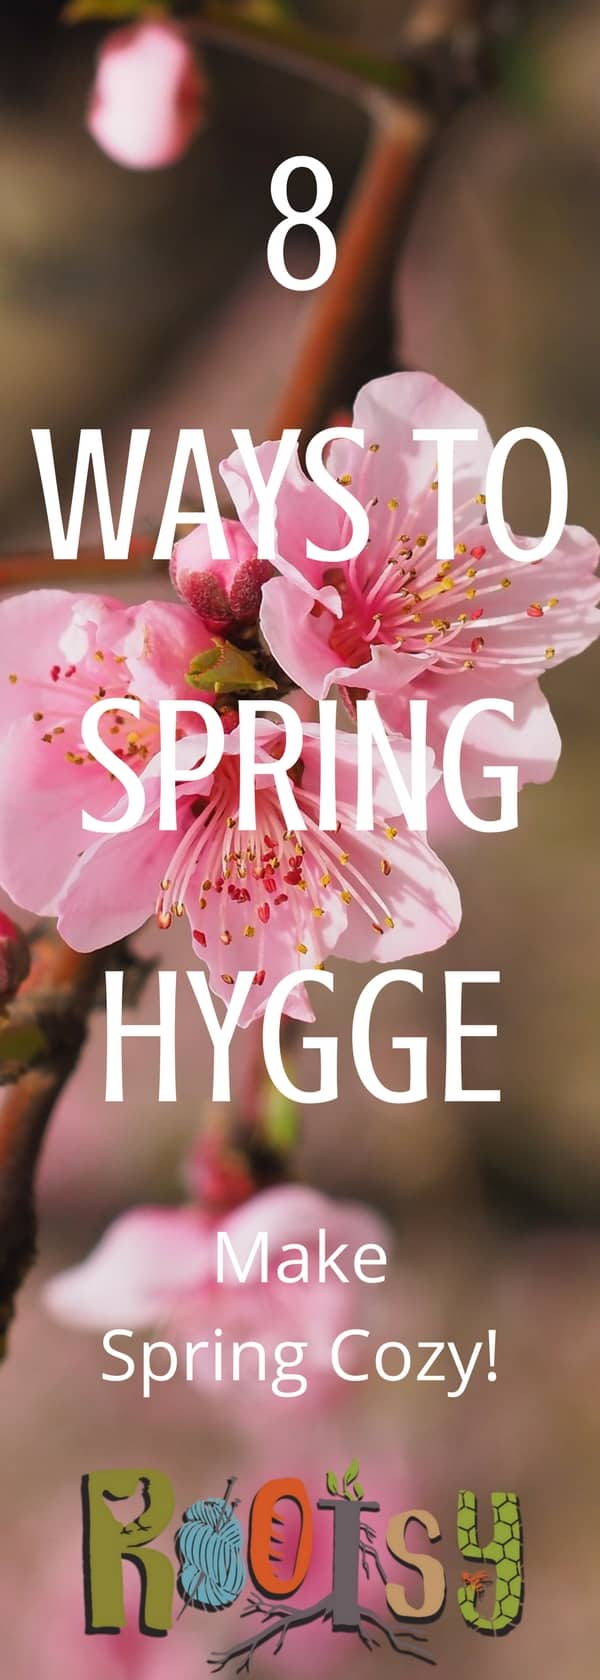 """It seems like all you hear about all winter anymore is """"hygge."""" What's hygge? Hygge is a Danish concept of living a cozy life, enjoying the simple things, and good food. Think comfy blankets, lots of candles, books, thick wooly socks, and comfort food. While this is usually a winter concept, check out these 8 Ways to Spring Hygge. 